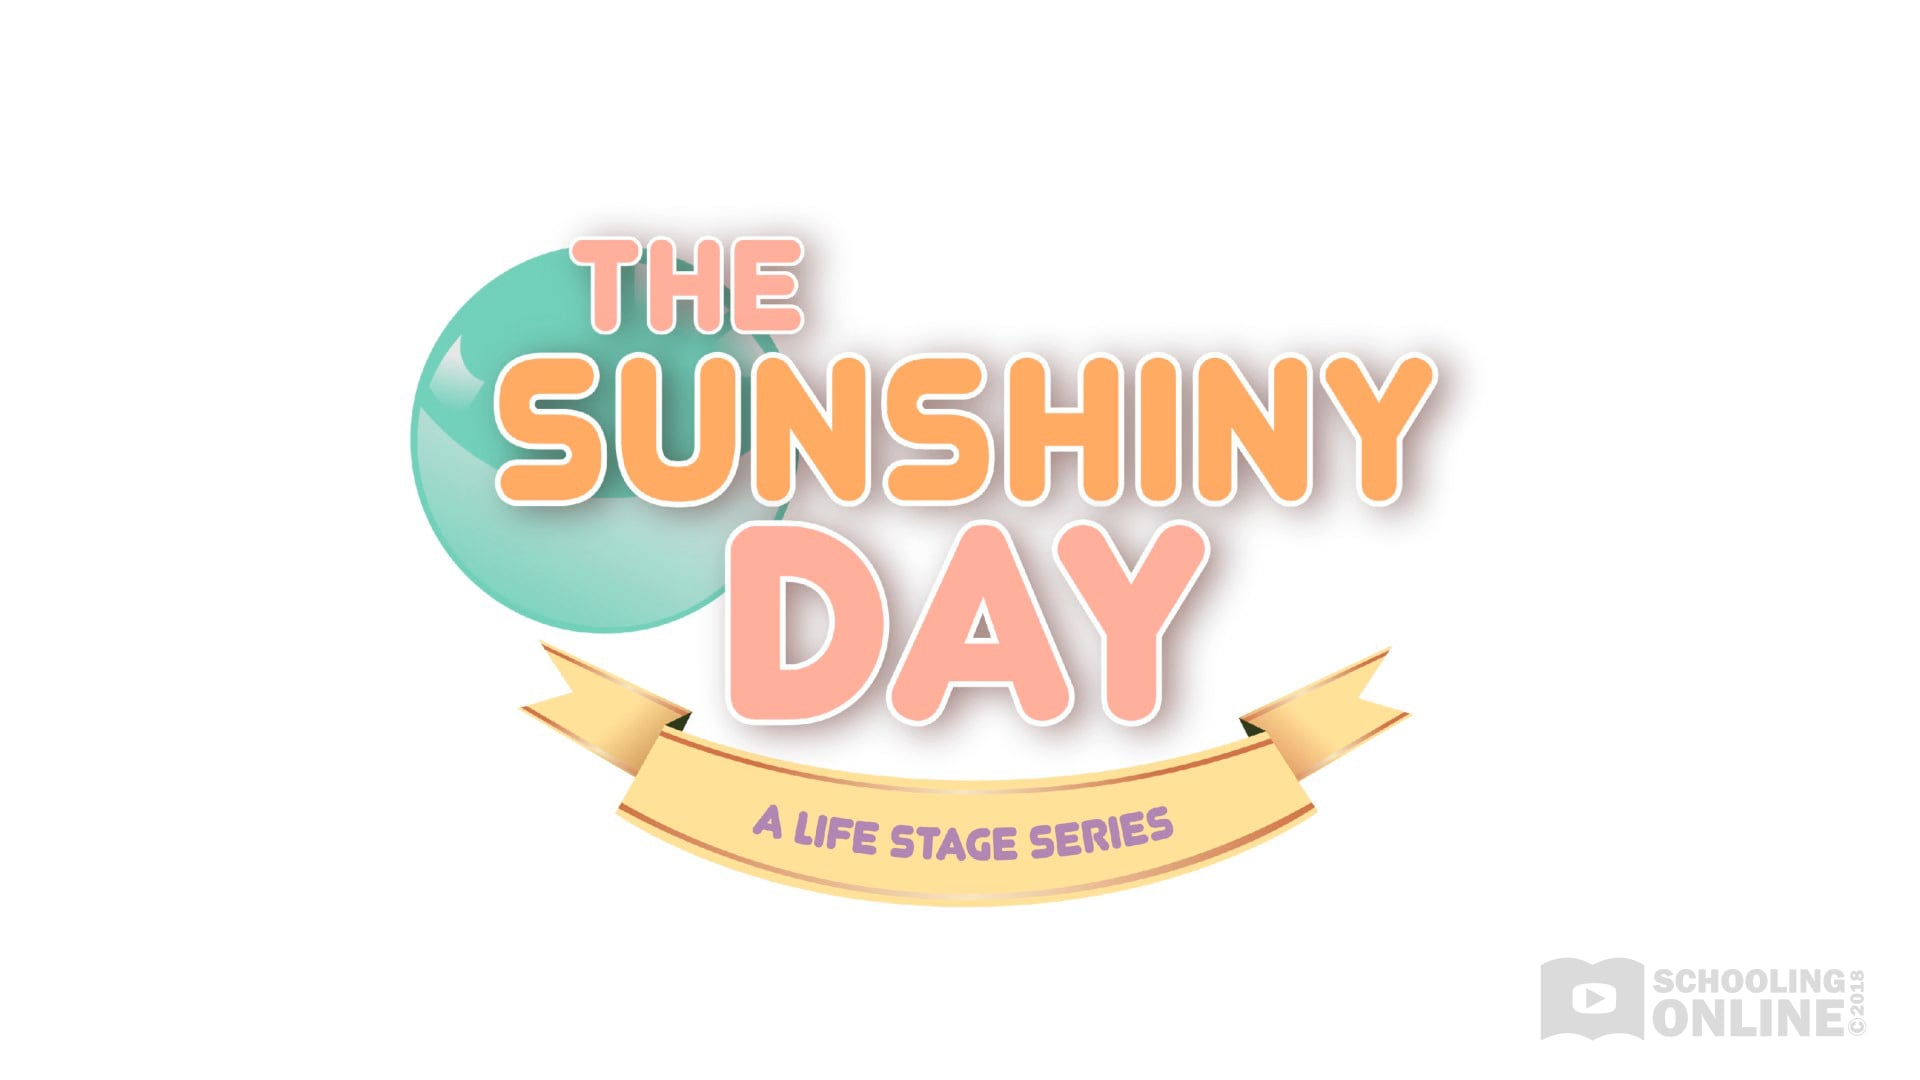 The Sunshiny Day - The Life Stage Series